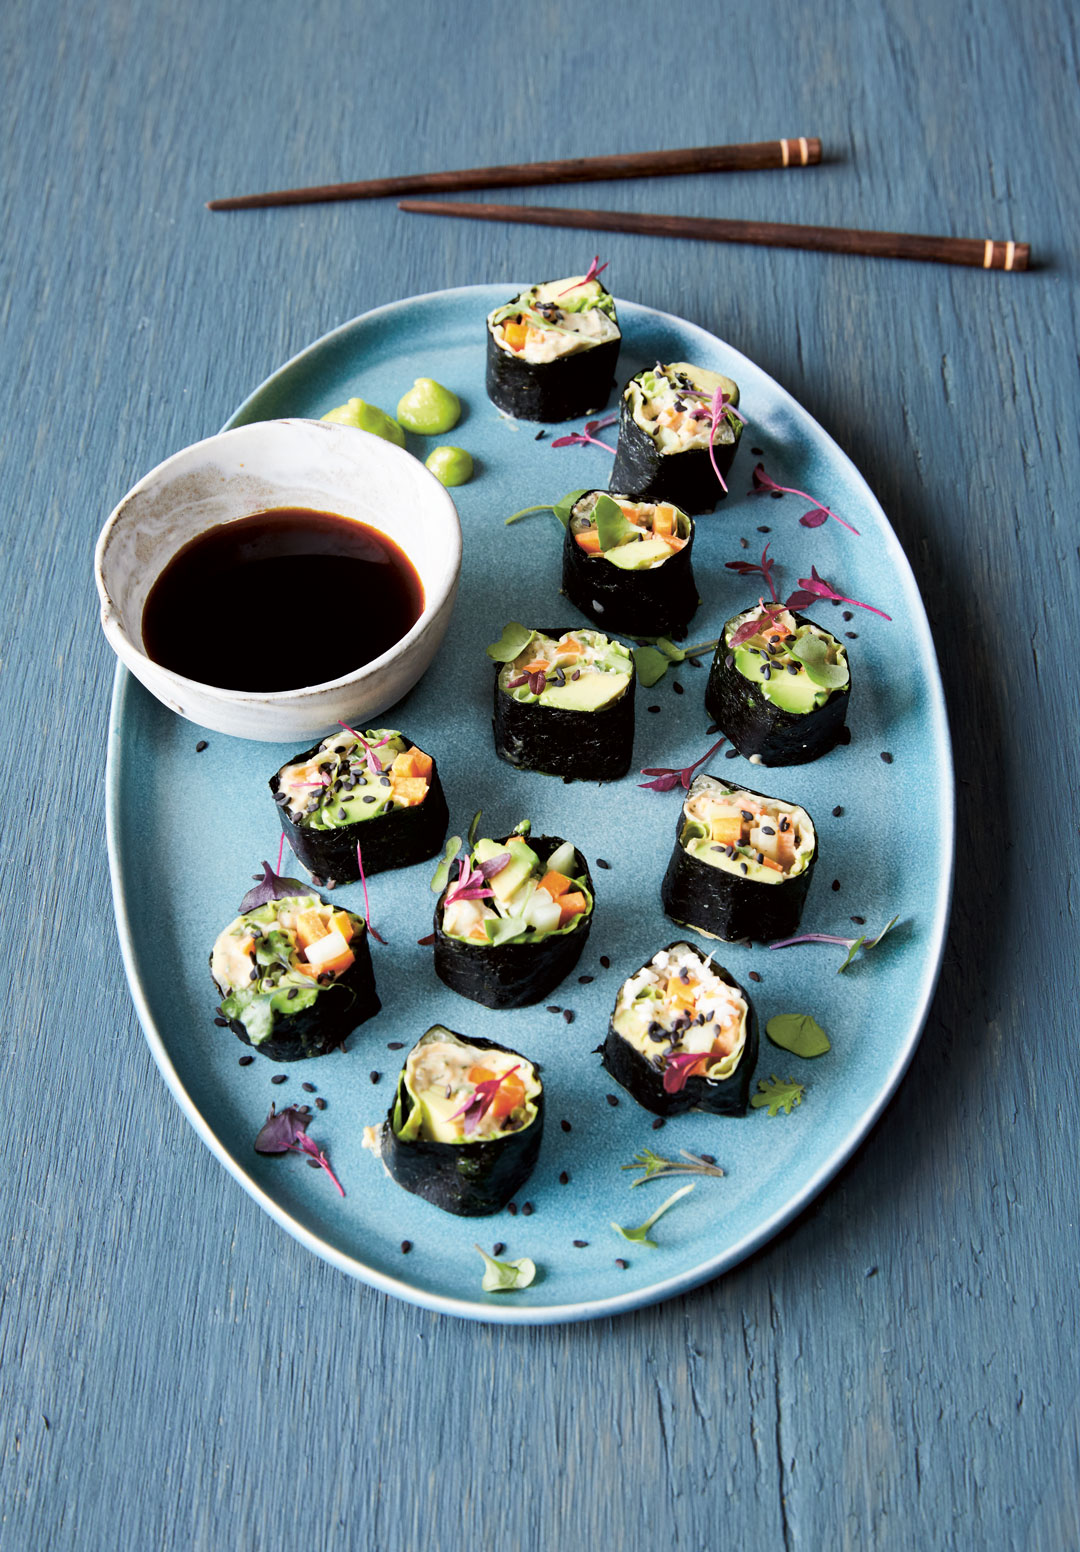 Raw nori and vegetable rolls